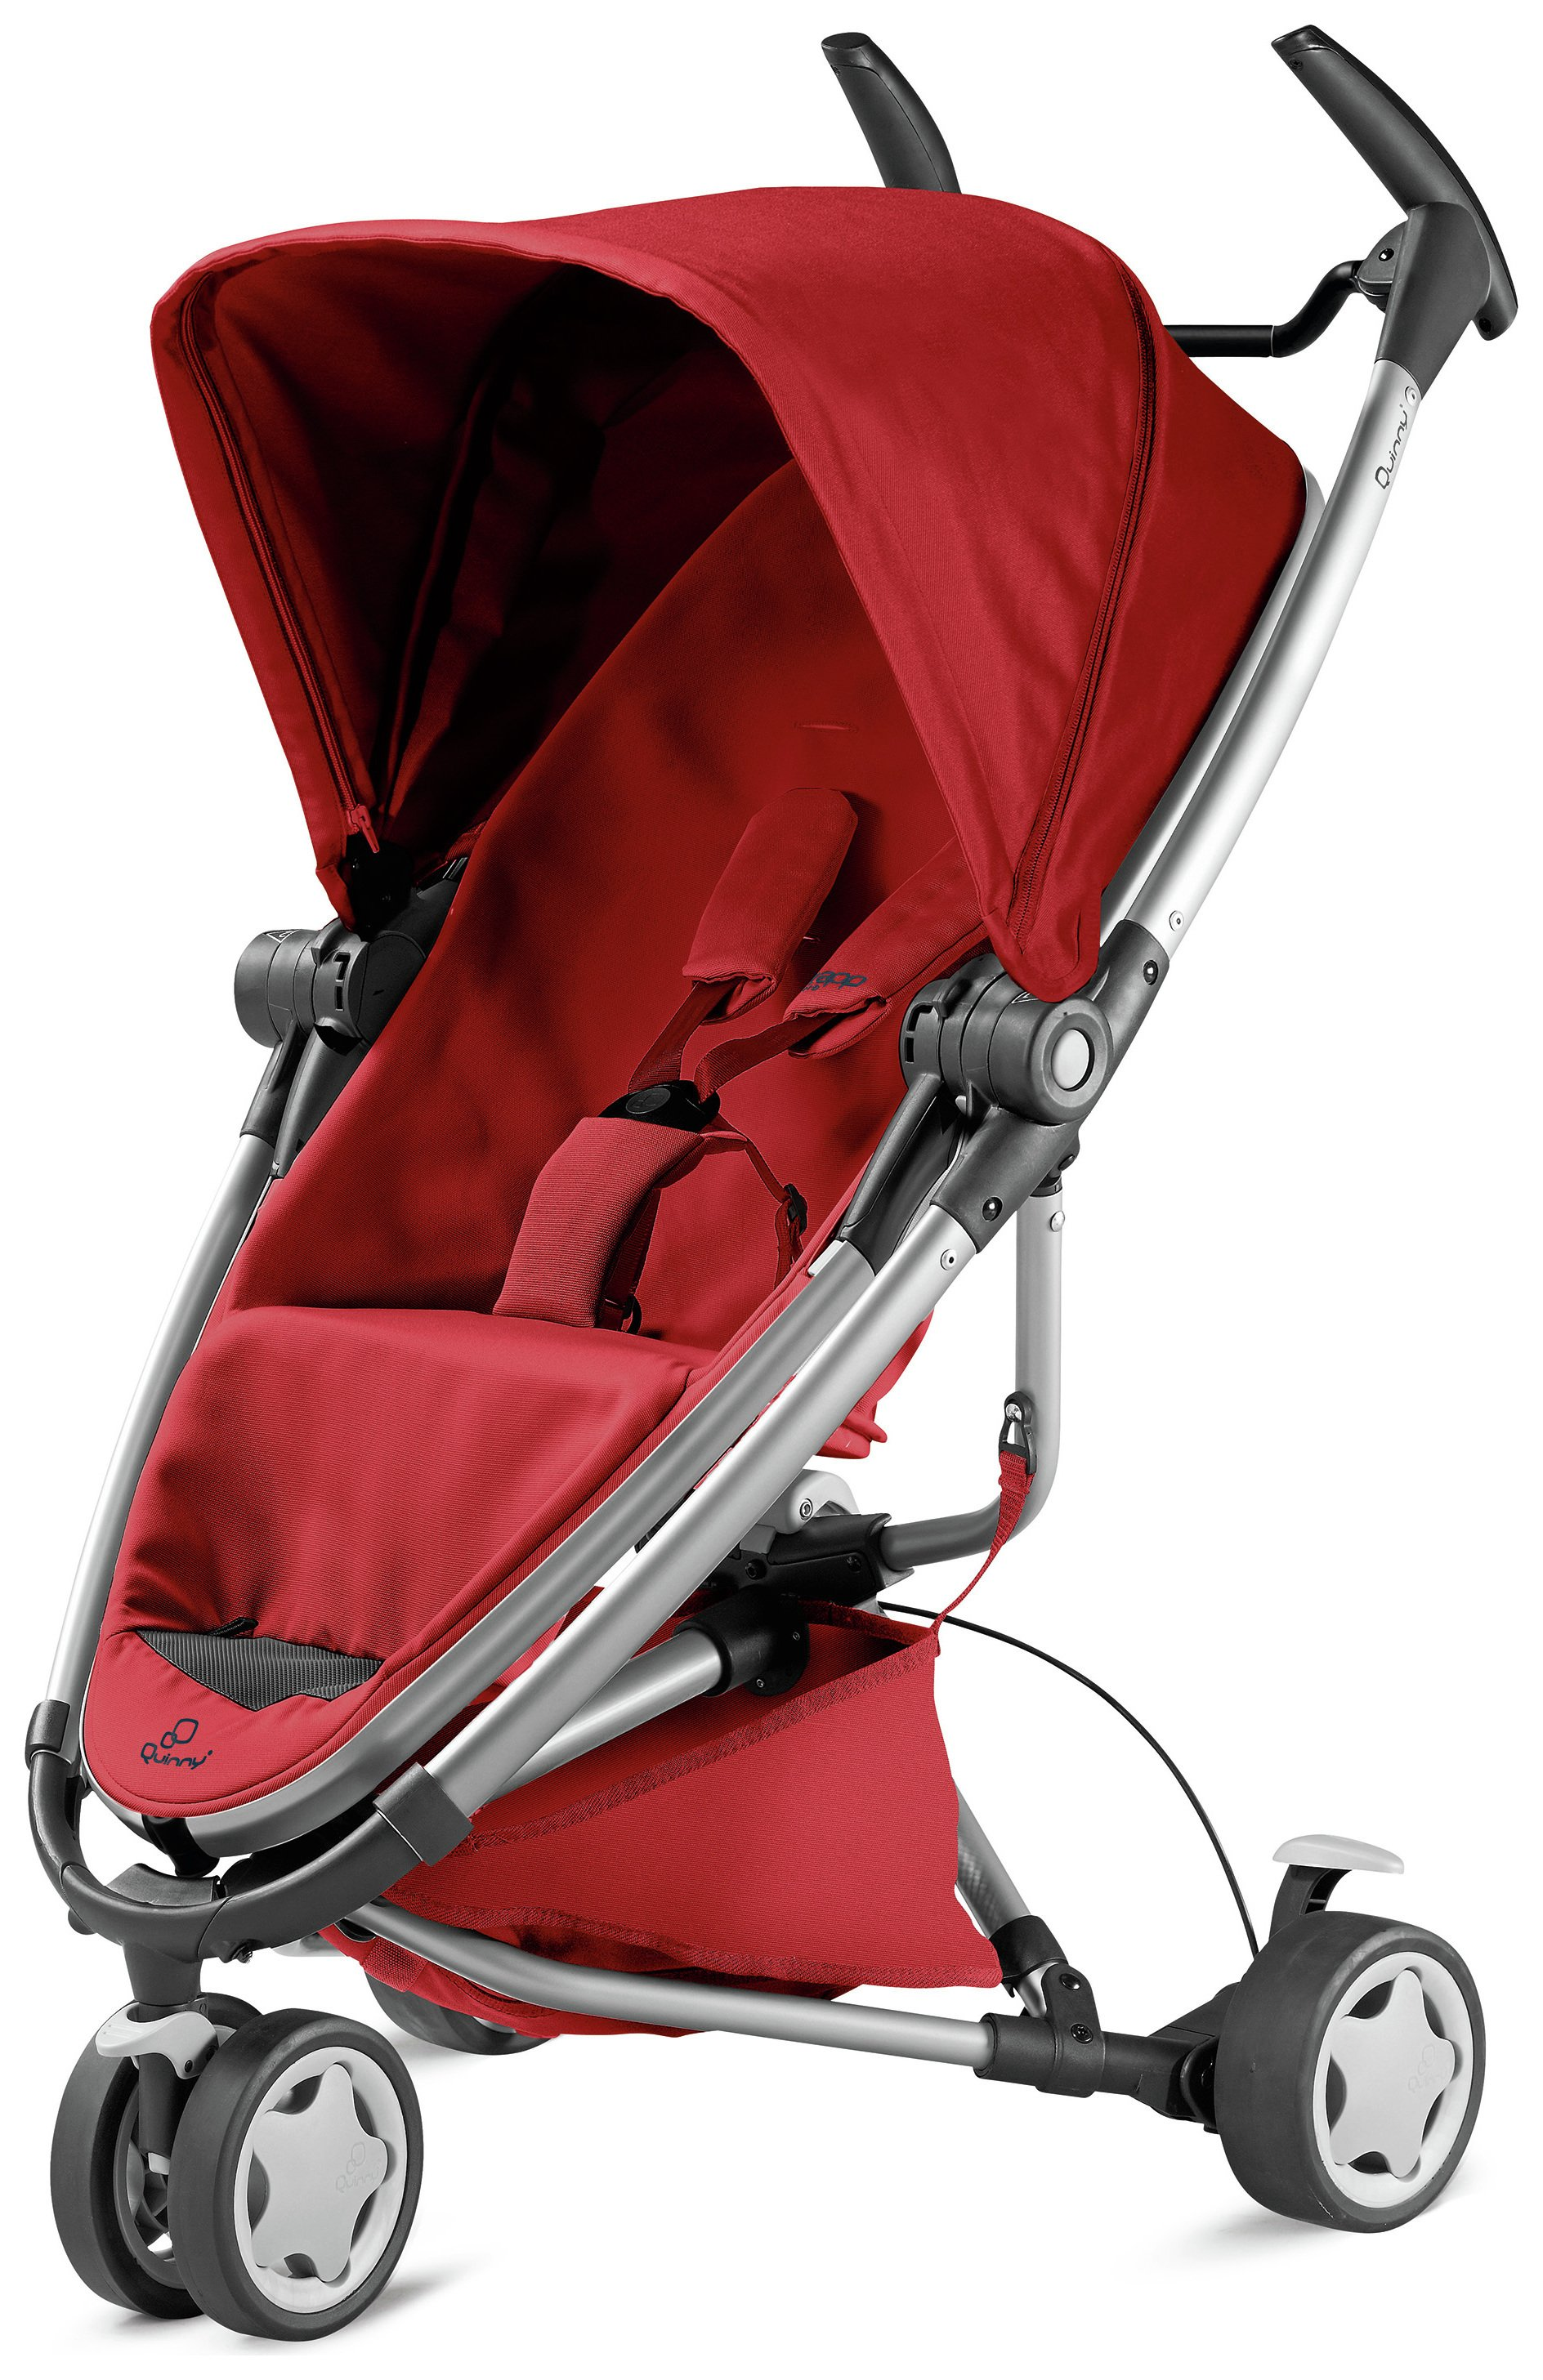 sale on quinny zapp xtra stroller red rumour quinny now available our best price on quinny z. Black Bedroom Furniture Sets. Home Design Ideas